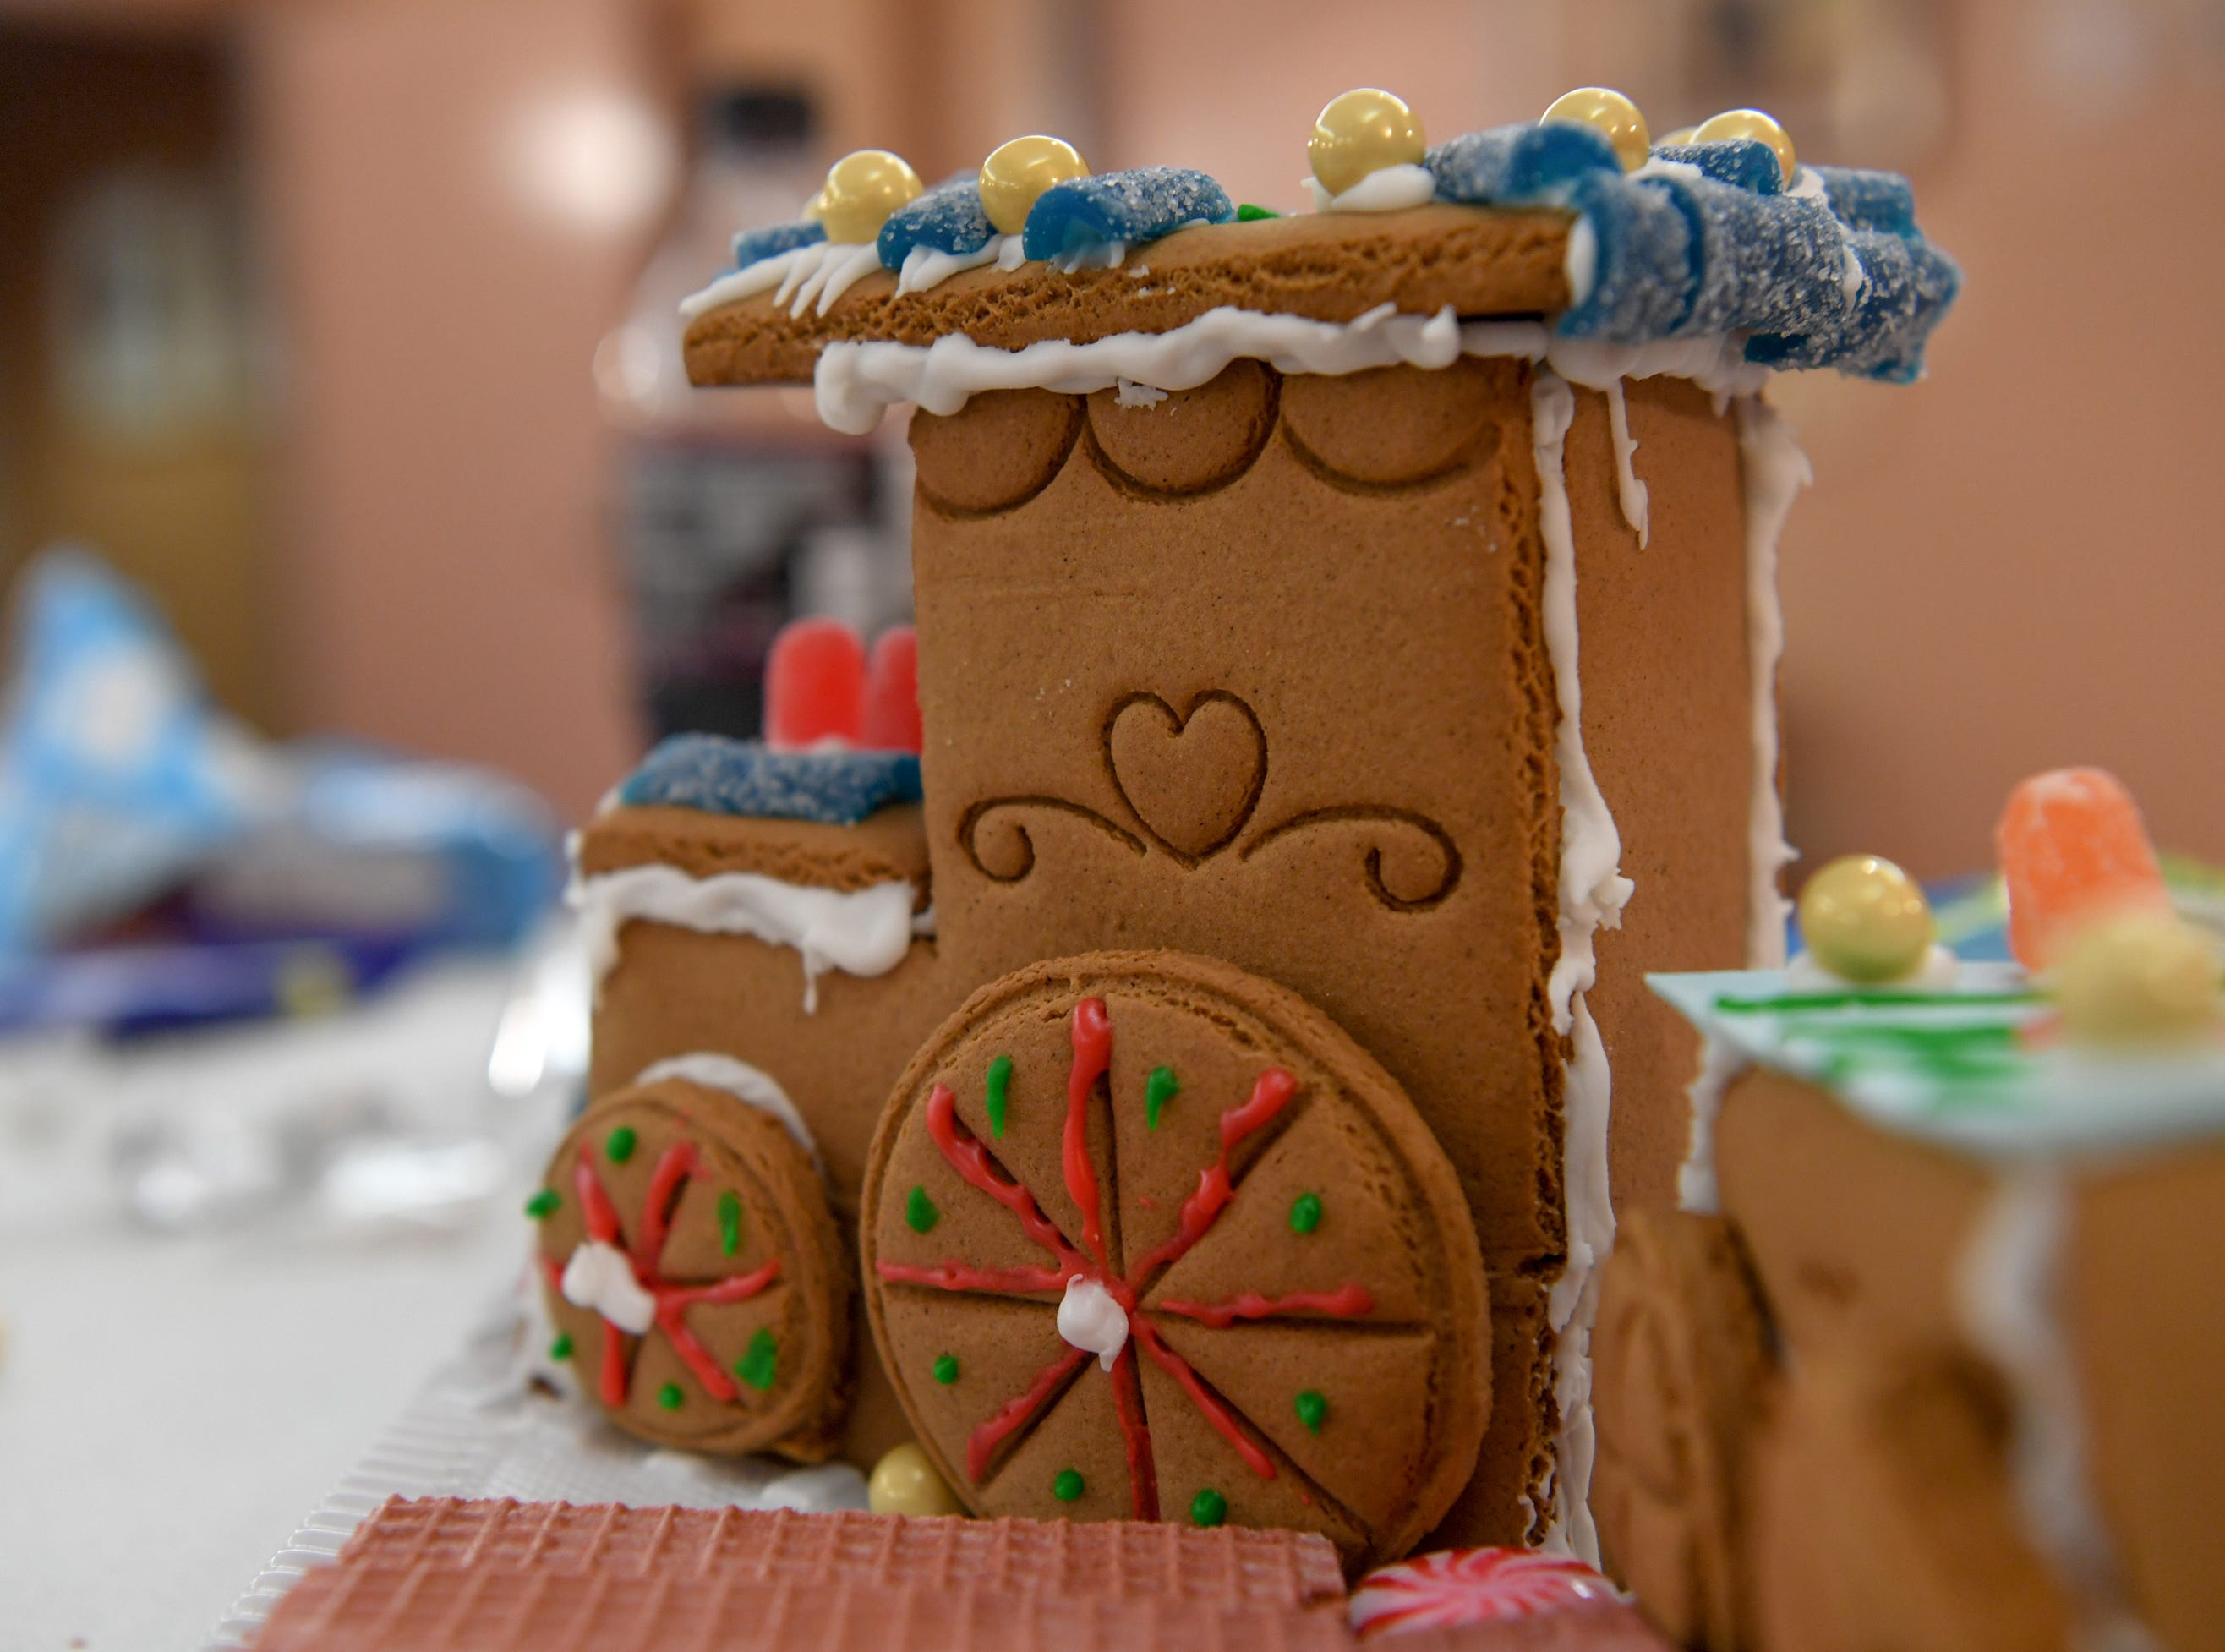 Details of gummy candies and icing decorate a train-shaped gingerbread creation during the Big Brothers Big Sisters of the Upstate gingerbread house decorating party at the Anderson County Museum in Anderson on Tuesday.